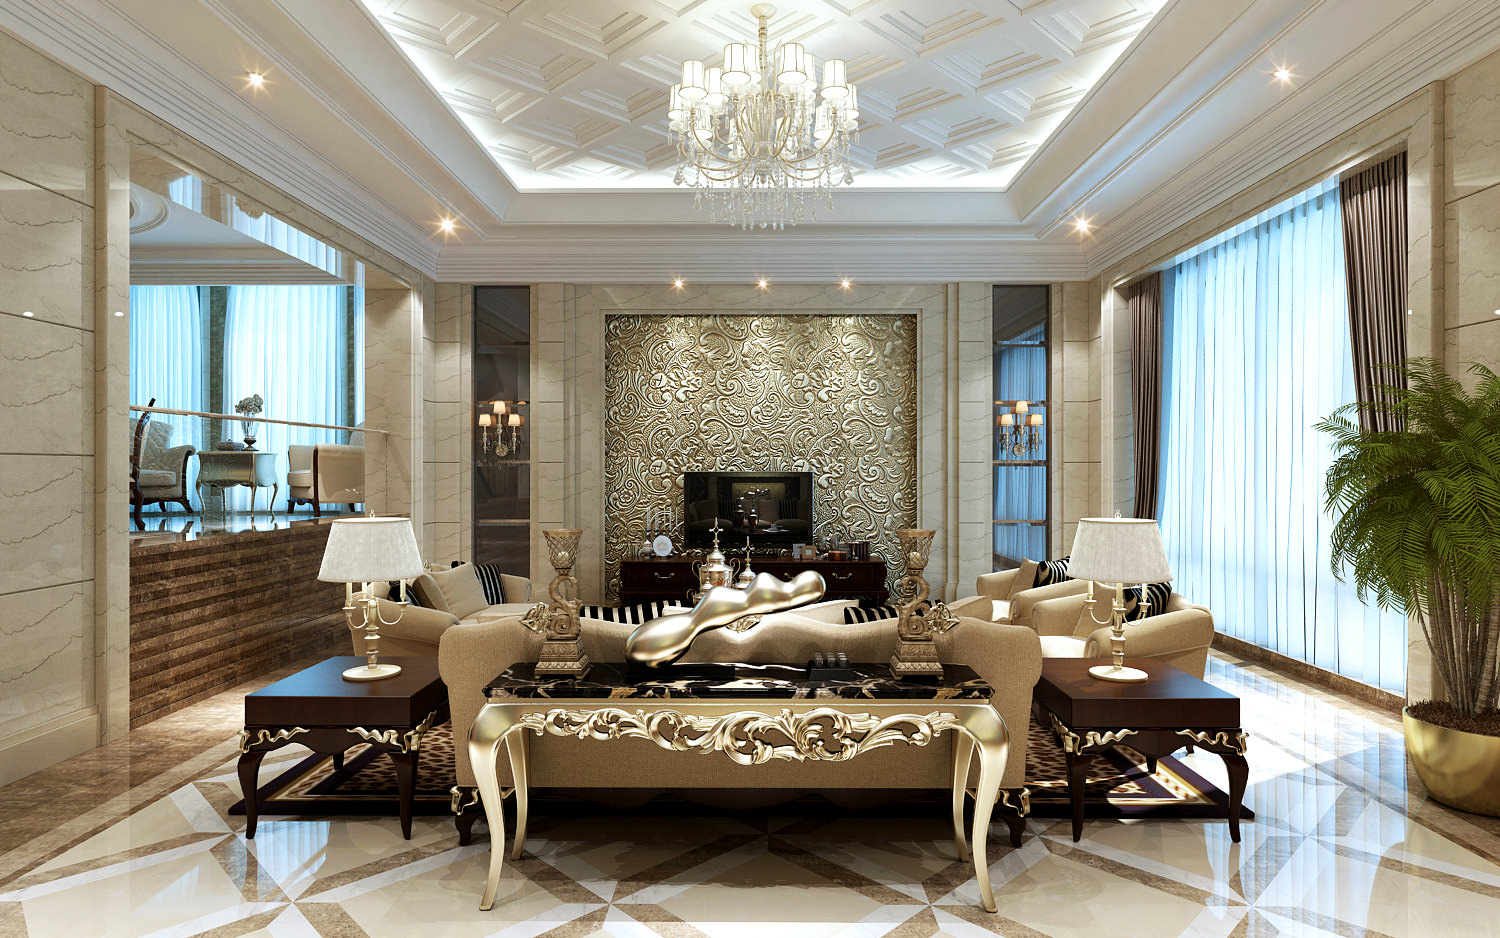 Gold color themed living room with intricate Oriental Chinese design furniture